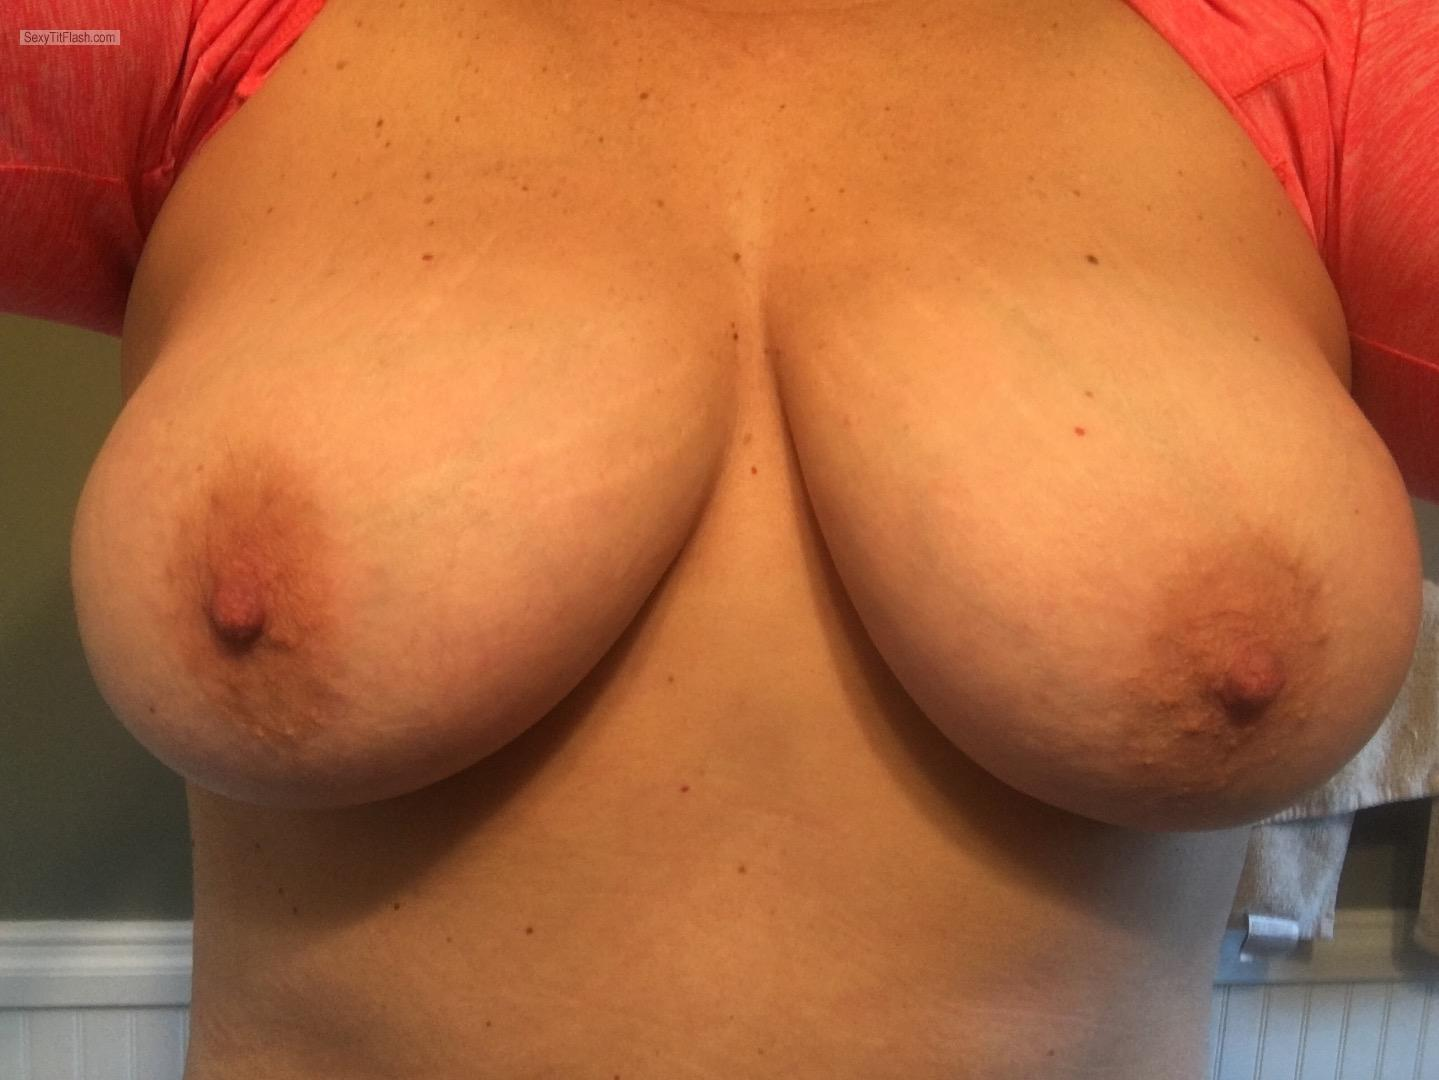 Tit Flash: My Big Tits (Selfie) - Shan from United States